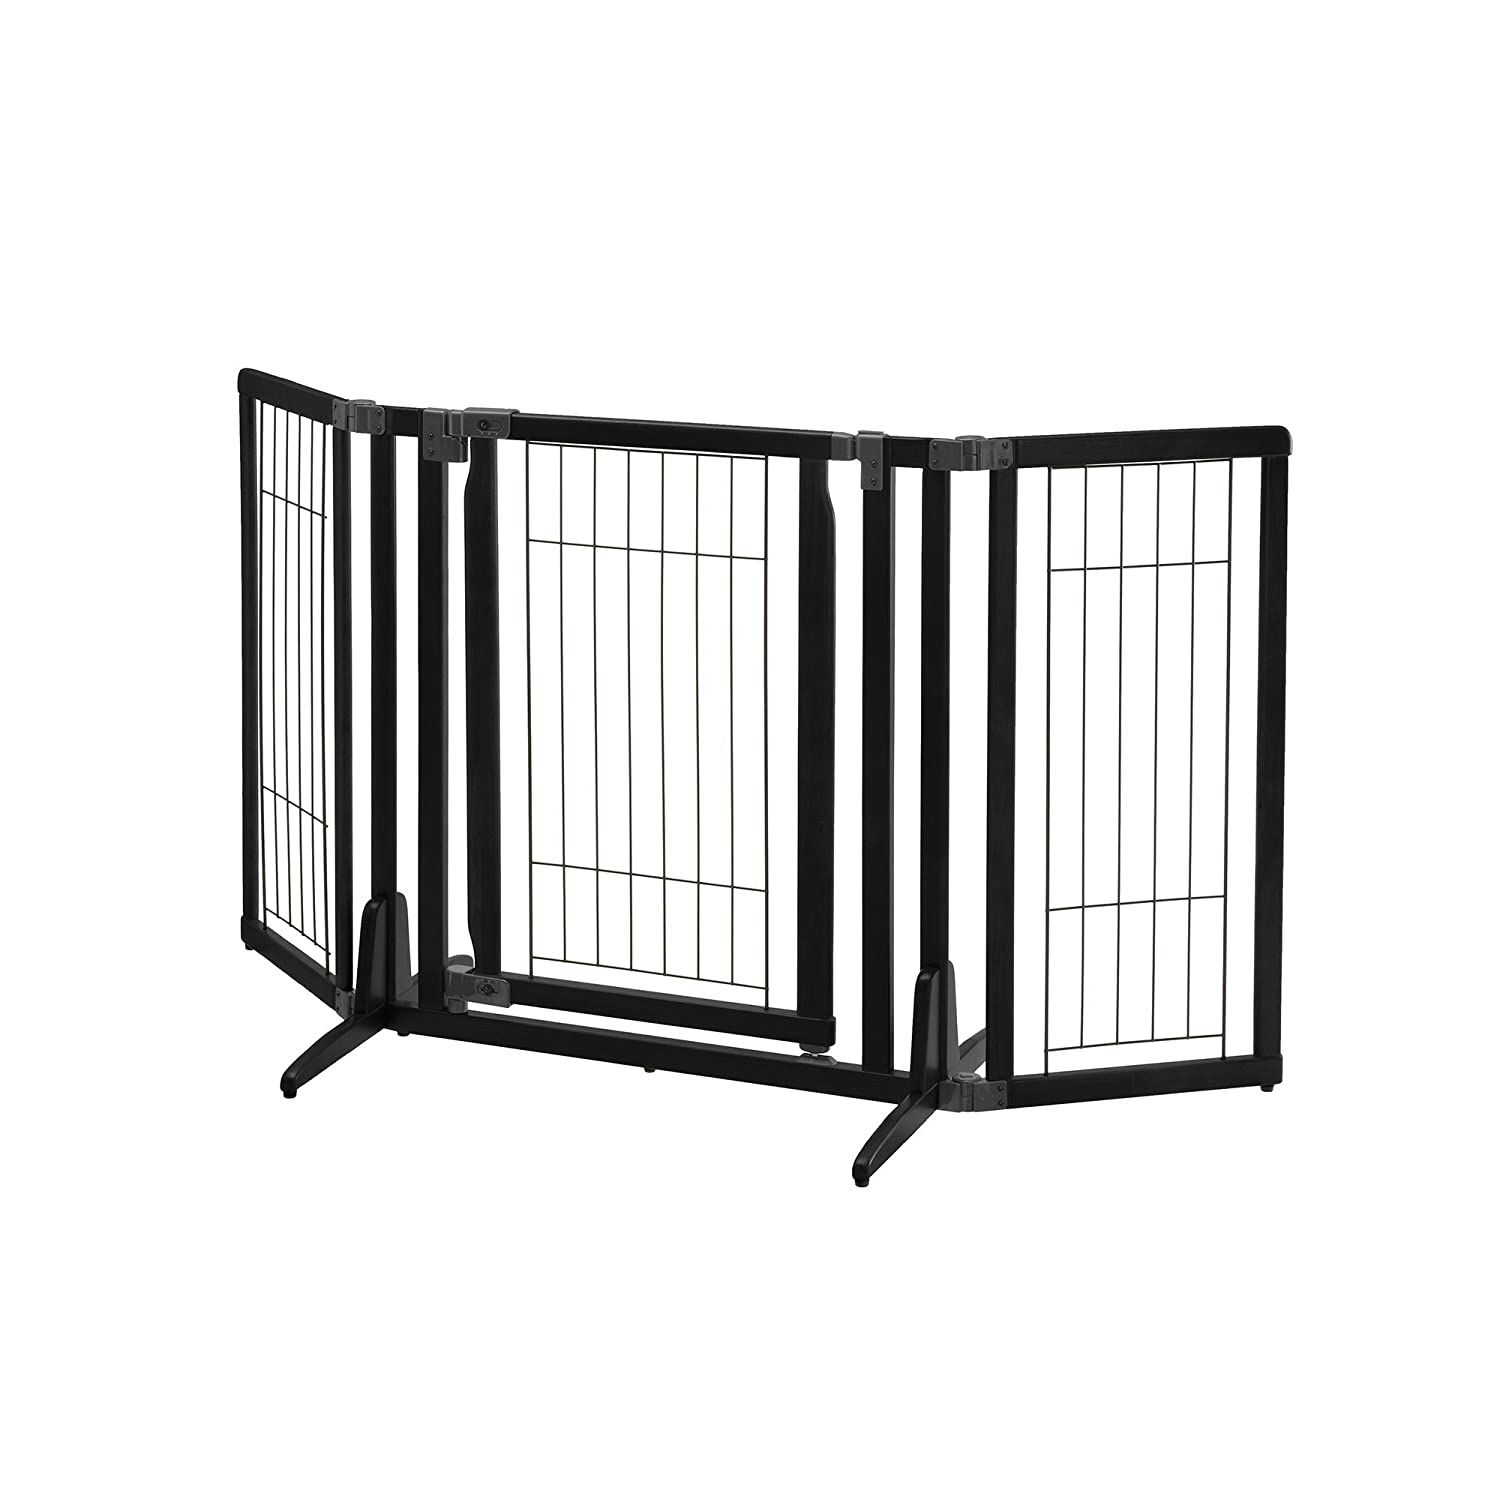 Black Richell 94956 Pet Kennels and Gates